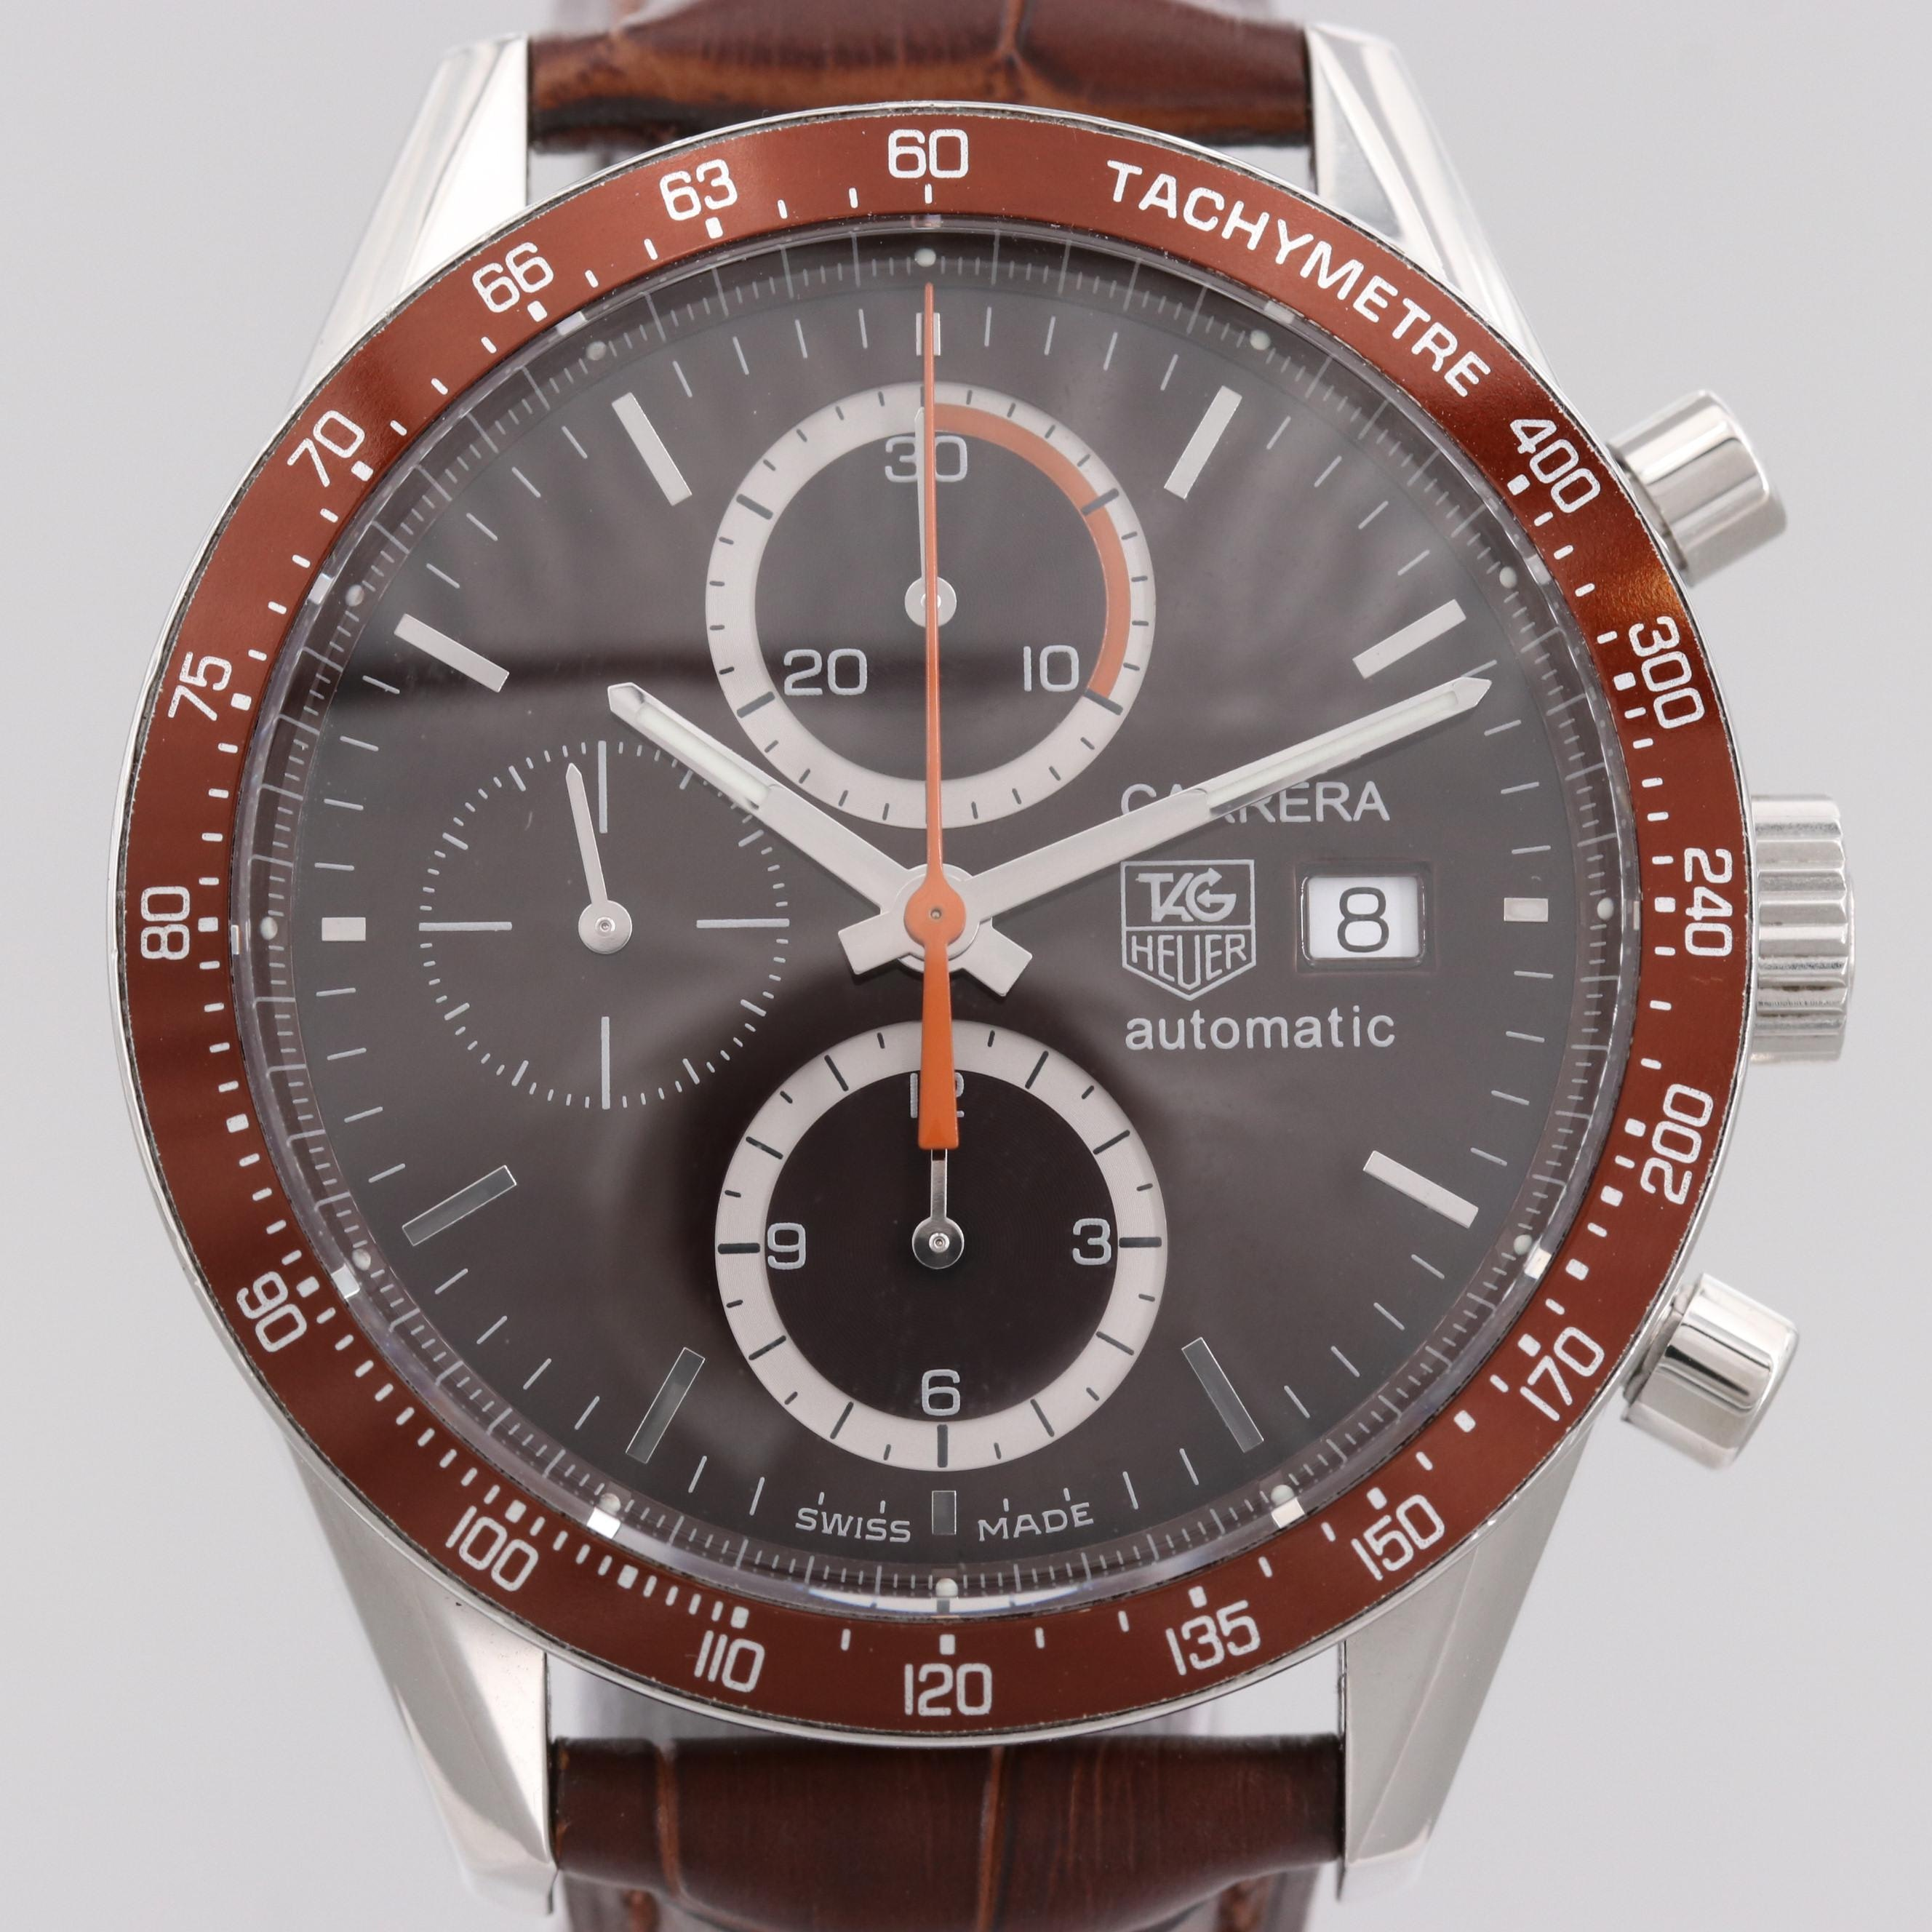 TAG Heuer Carrera Calibre 16 Stainless Steel Chronograph Automatic Wristwatch